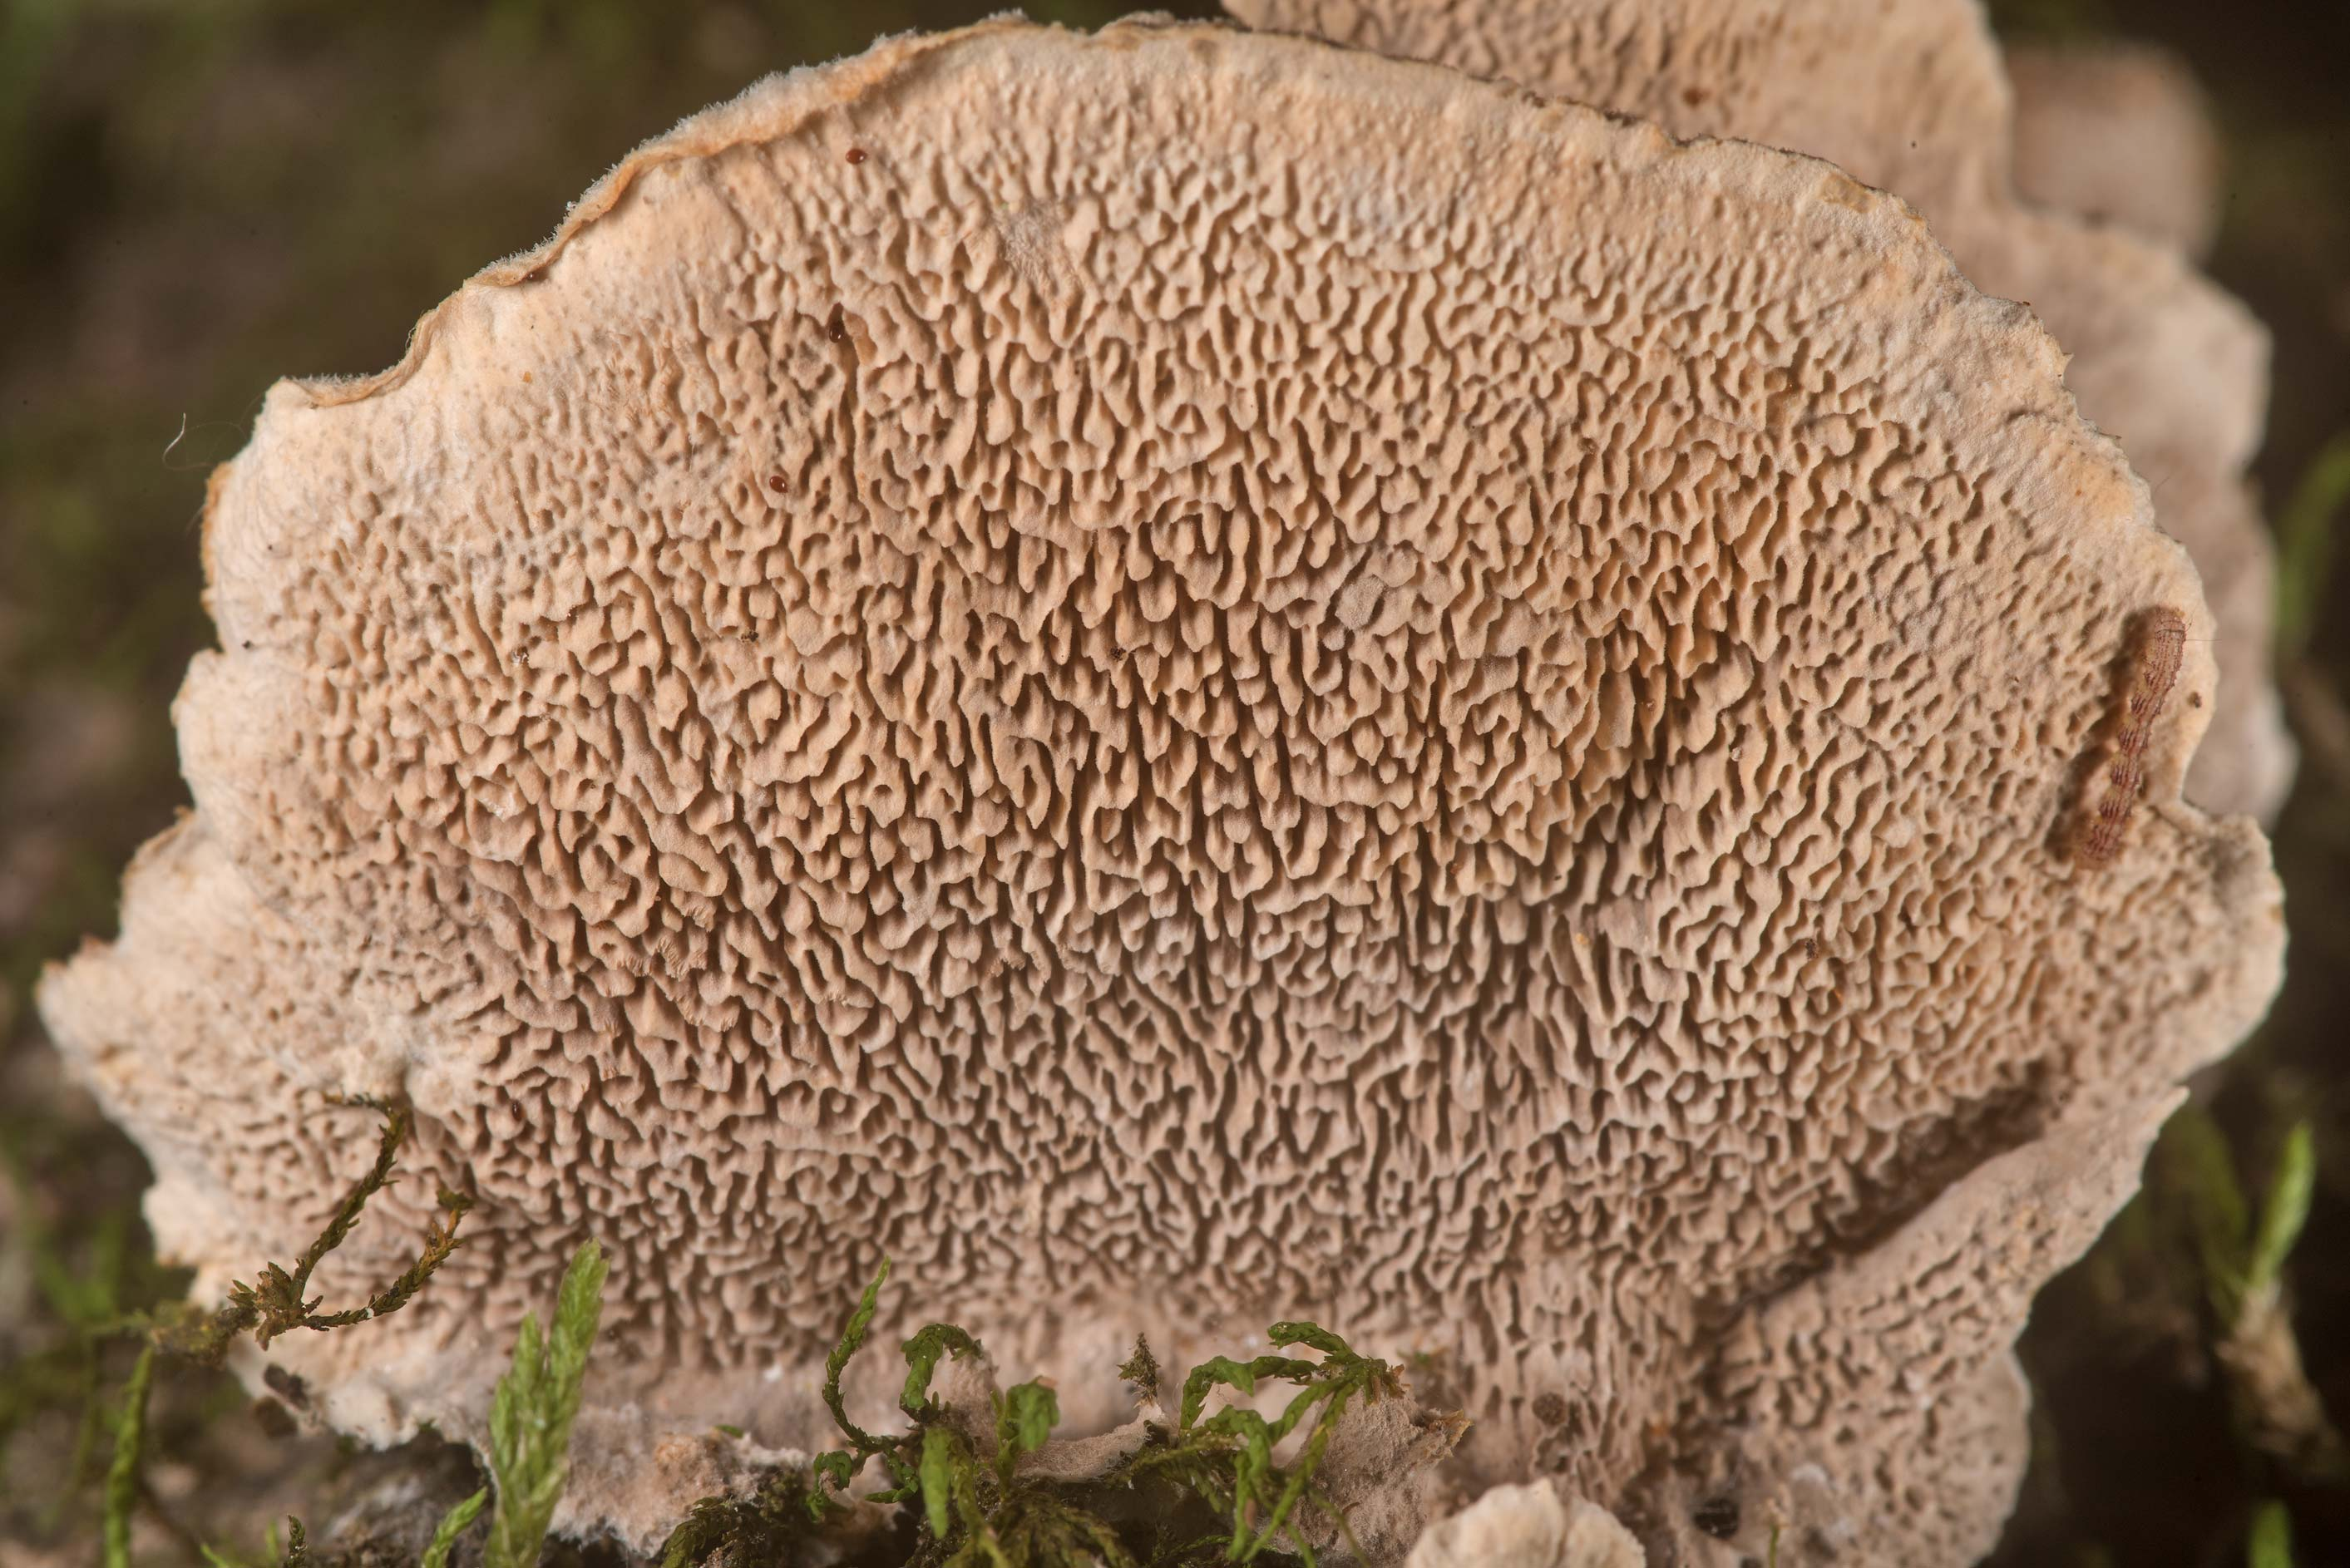 Pores of bracket polypore mushrooms Trametes on a...National Forest. Shepherd, Texas